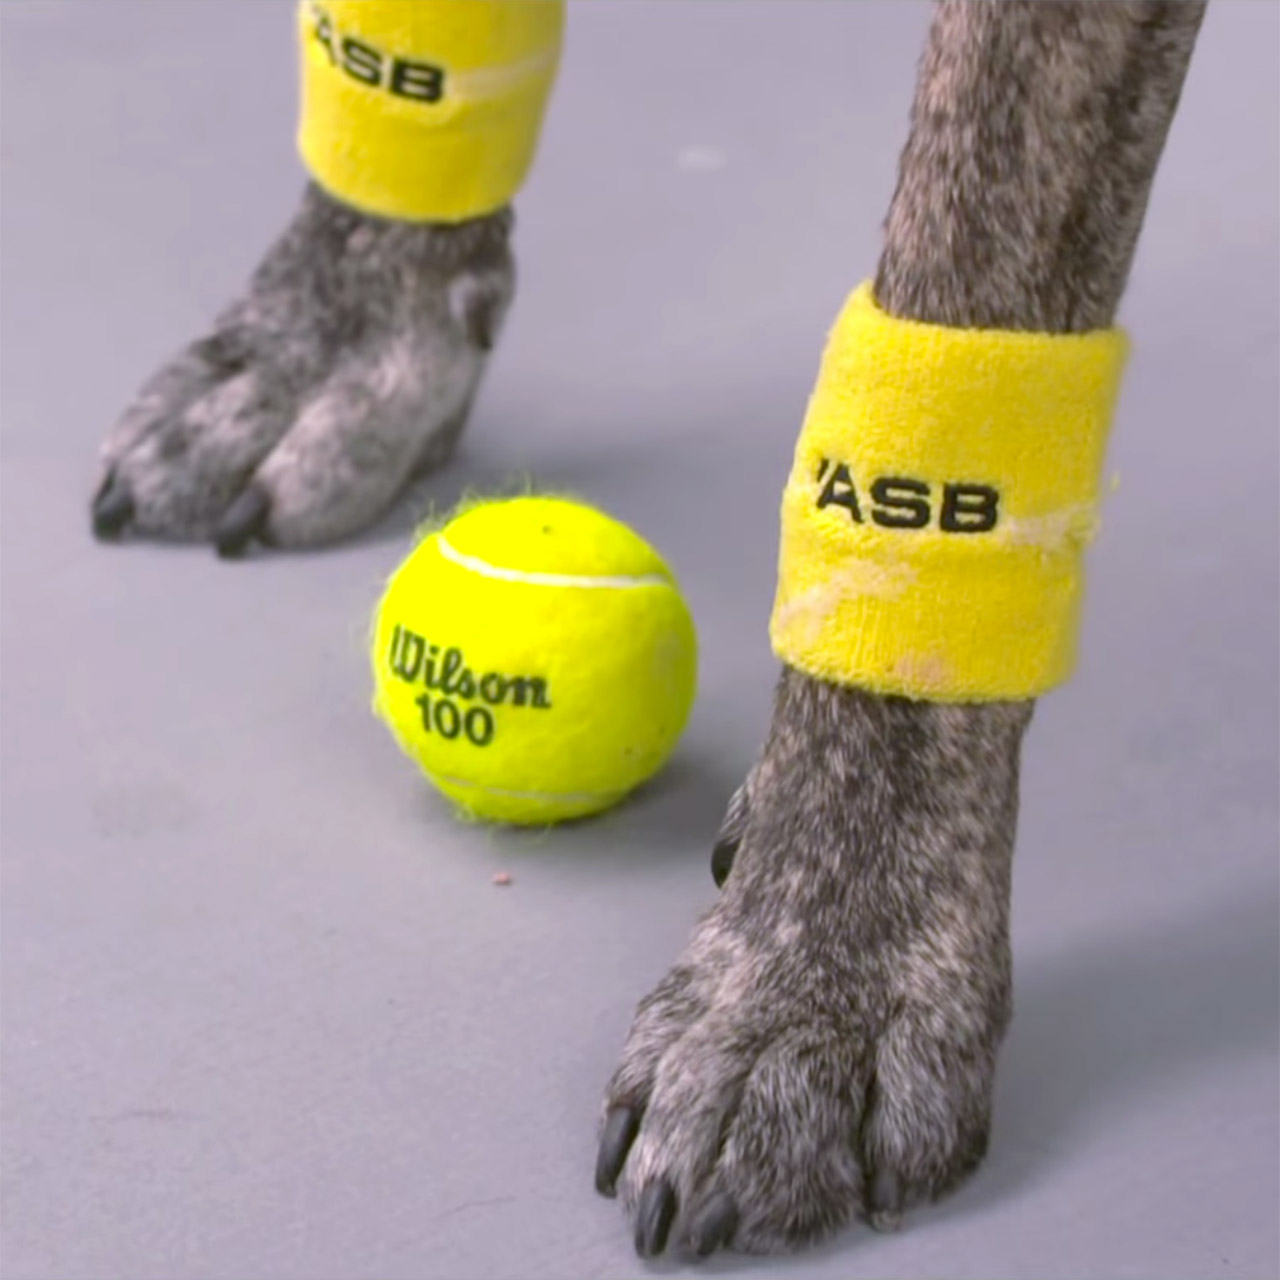 Venus Williams adores the ball dogs at the ASB Classic in New Zealand